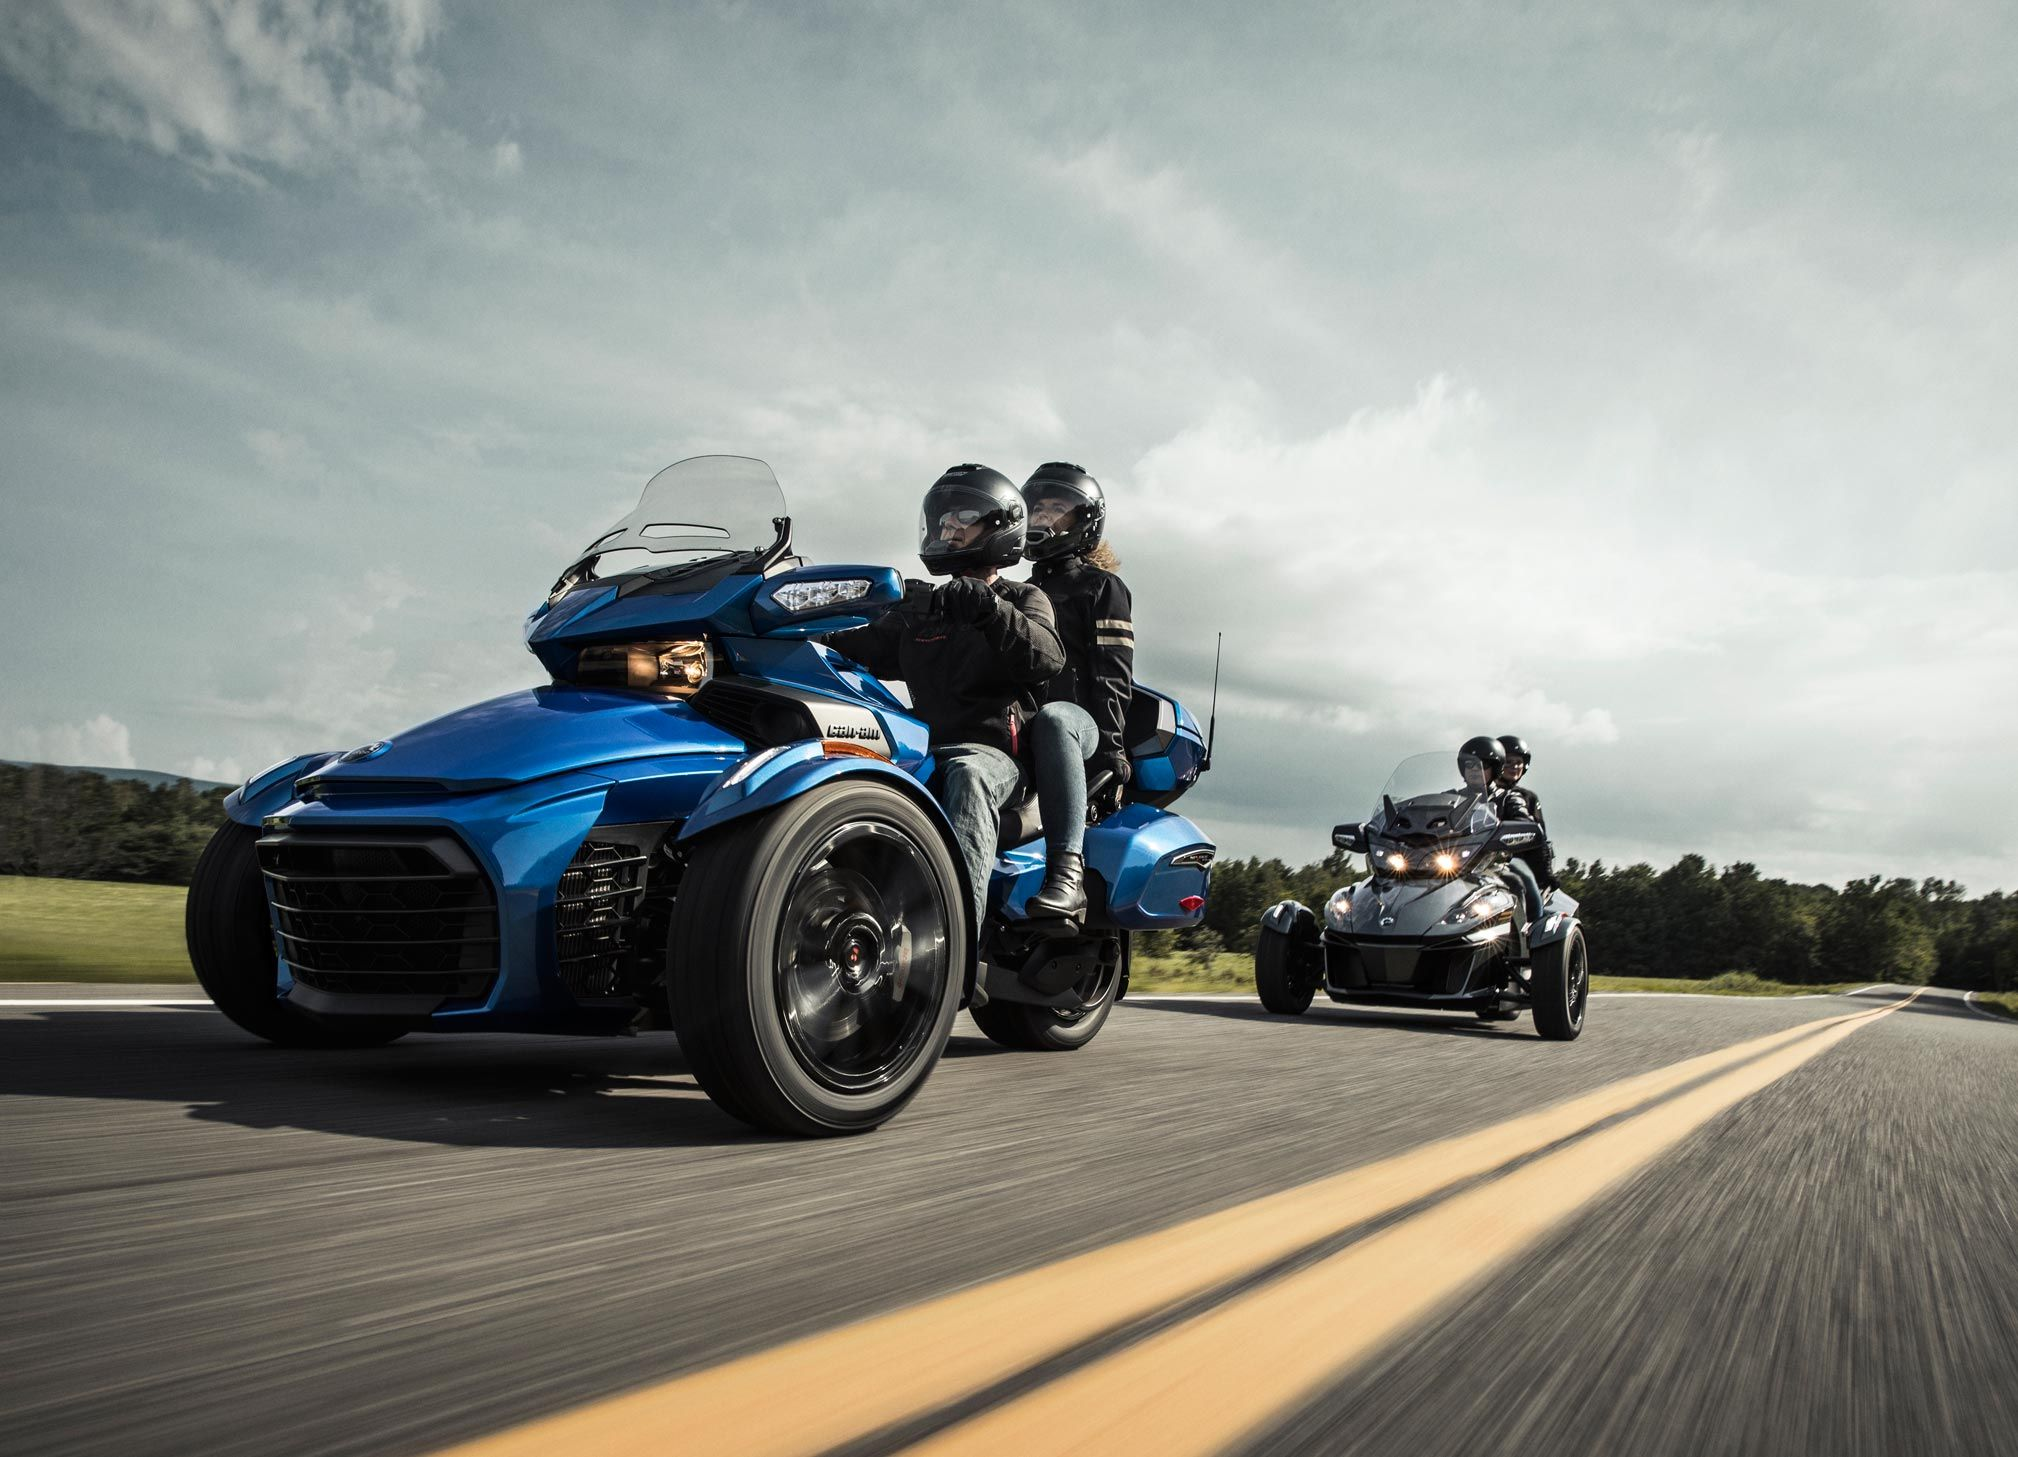 Saddle up for the ride of your life The new 2018 Can Am Spyder